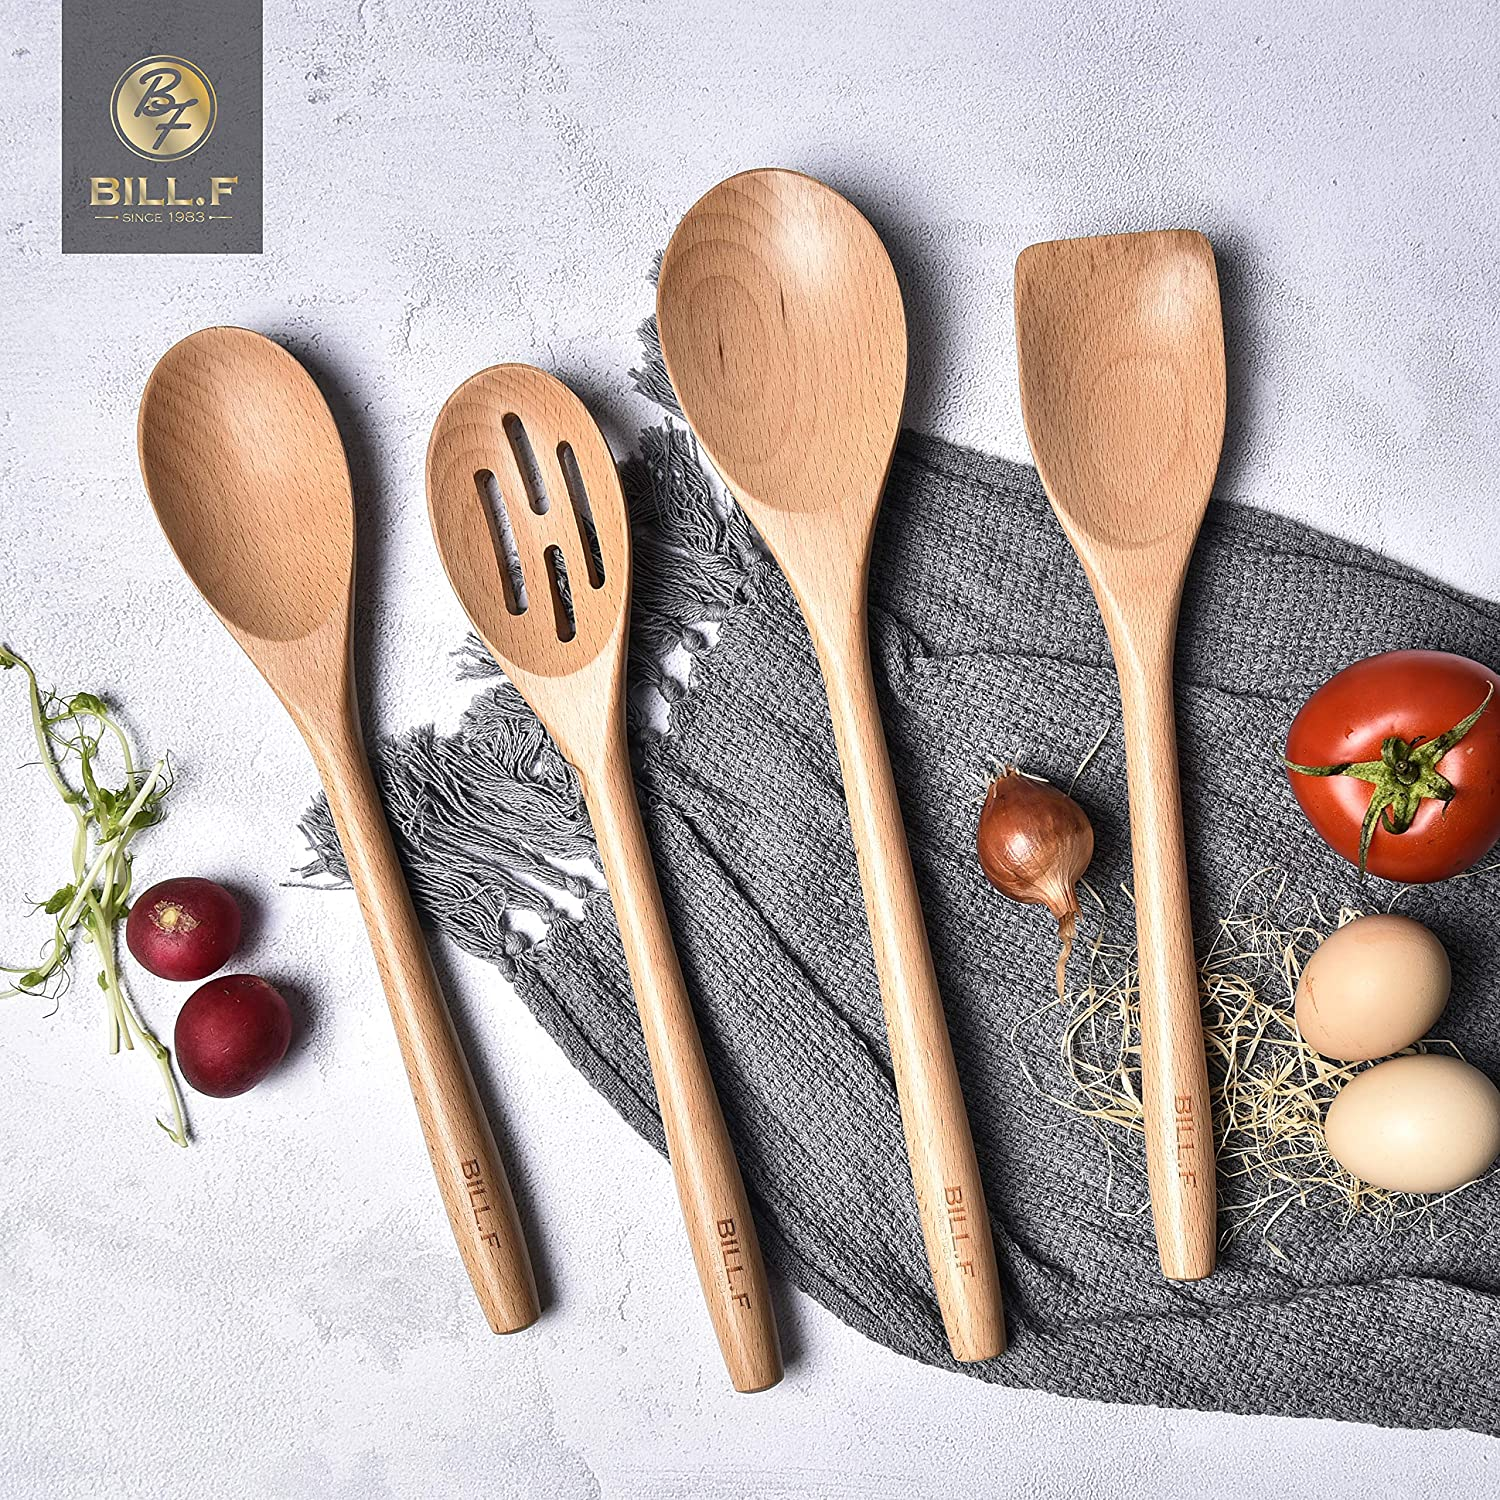 Beech Wooden Cooking Utensil Set, Kitchen Cooking Tools Kitchen Gadgets 4 Pieces Spoon & Spatula Mix Perfect for Nonstick Pots and Pans Cookware Turner